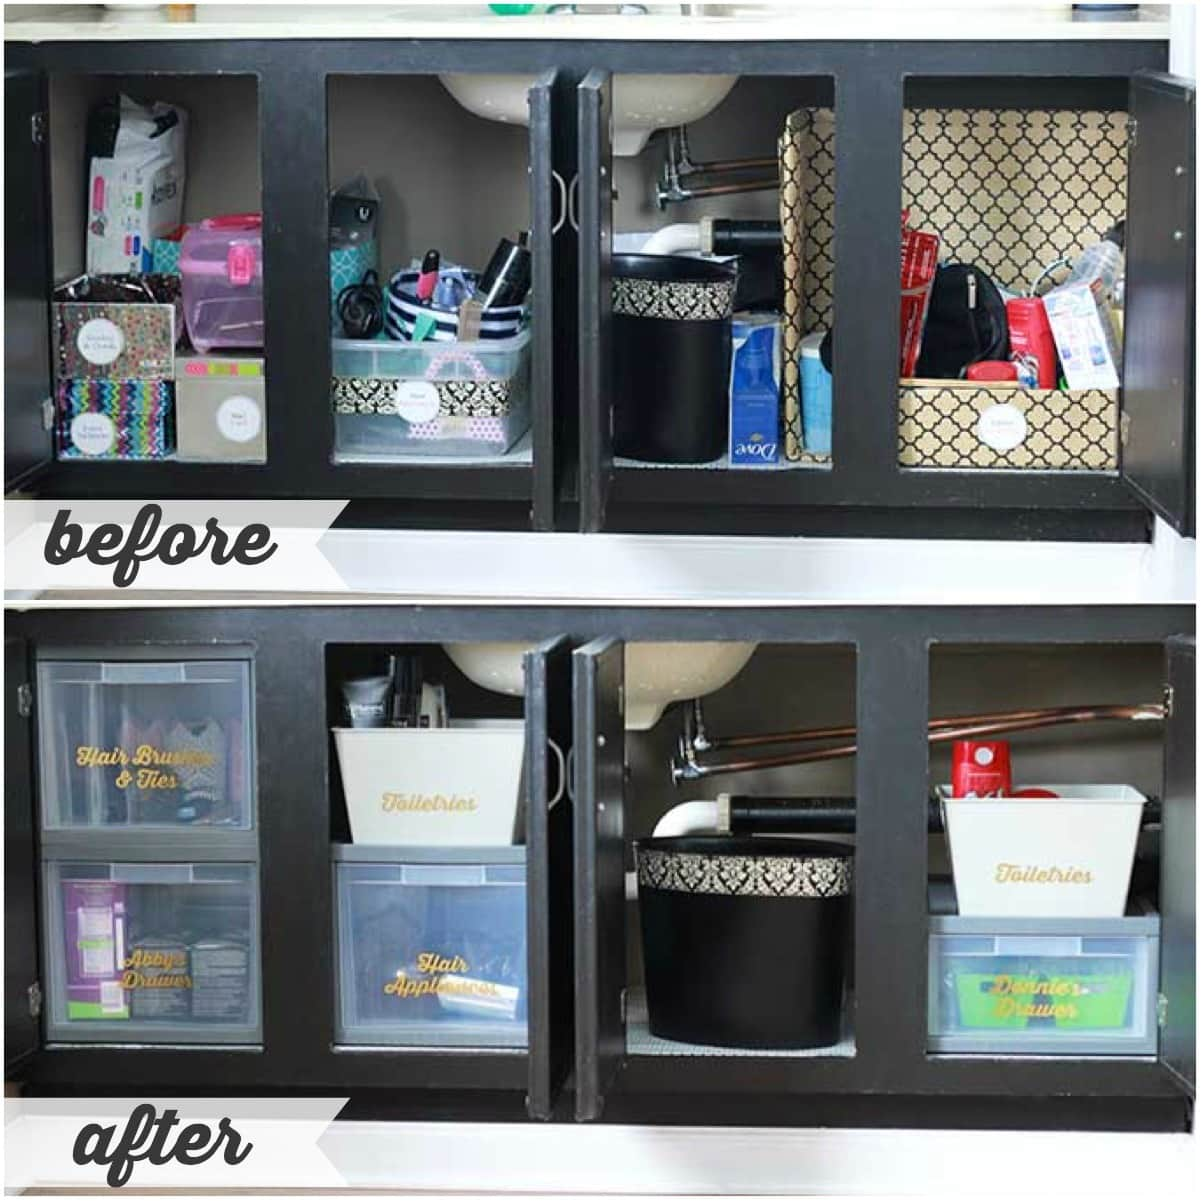 A Perfectly Organized Mudroom Just A Girl And Her Blog: High/Low Bathroom Cabinet Organization